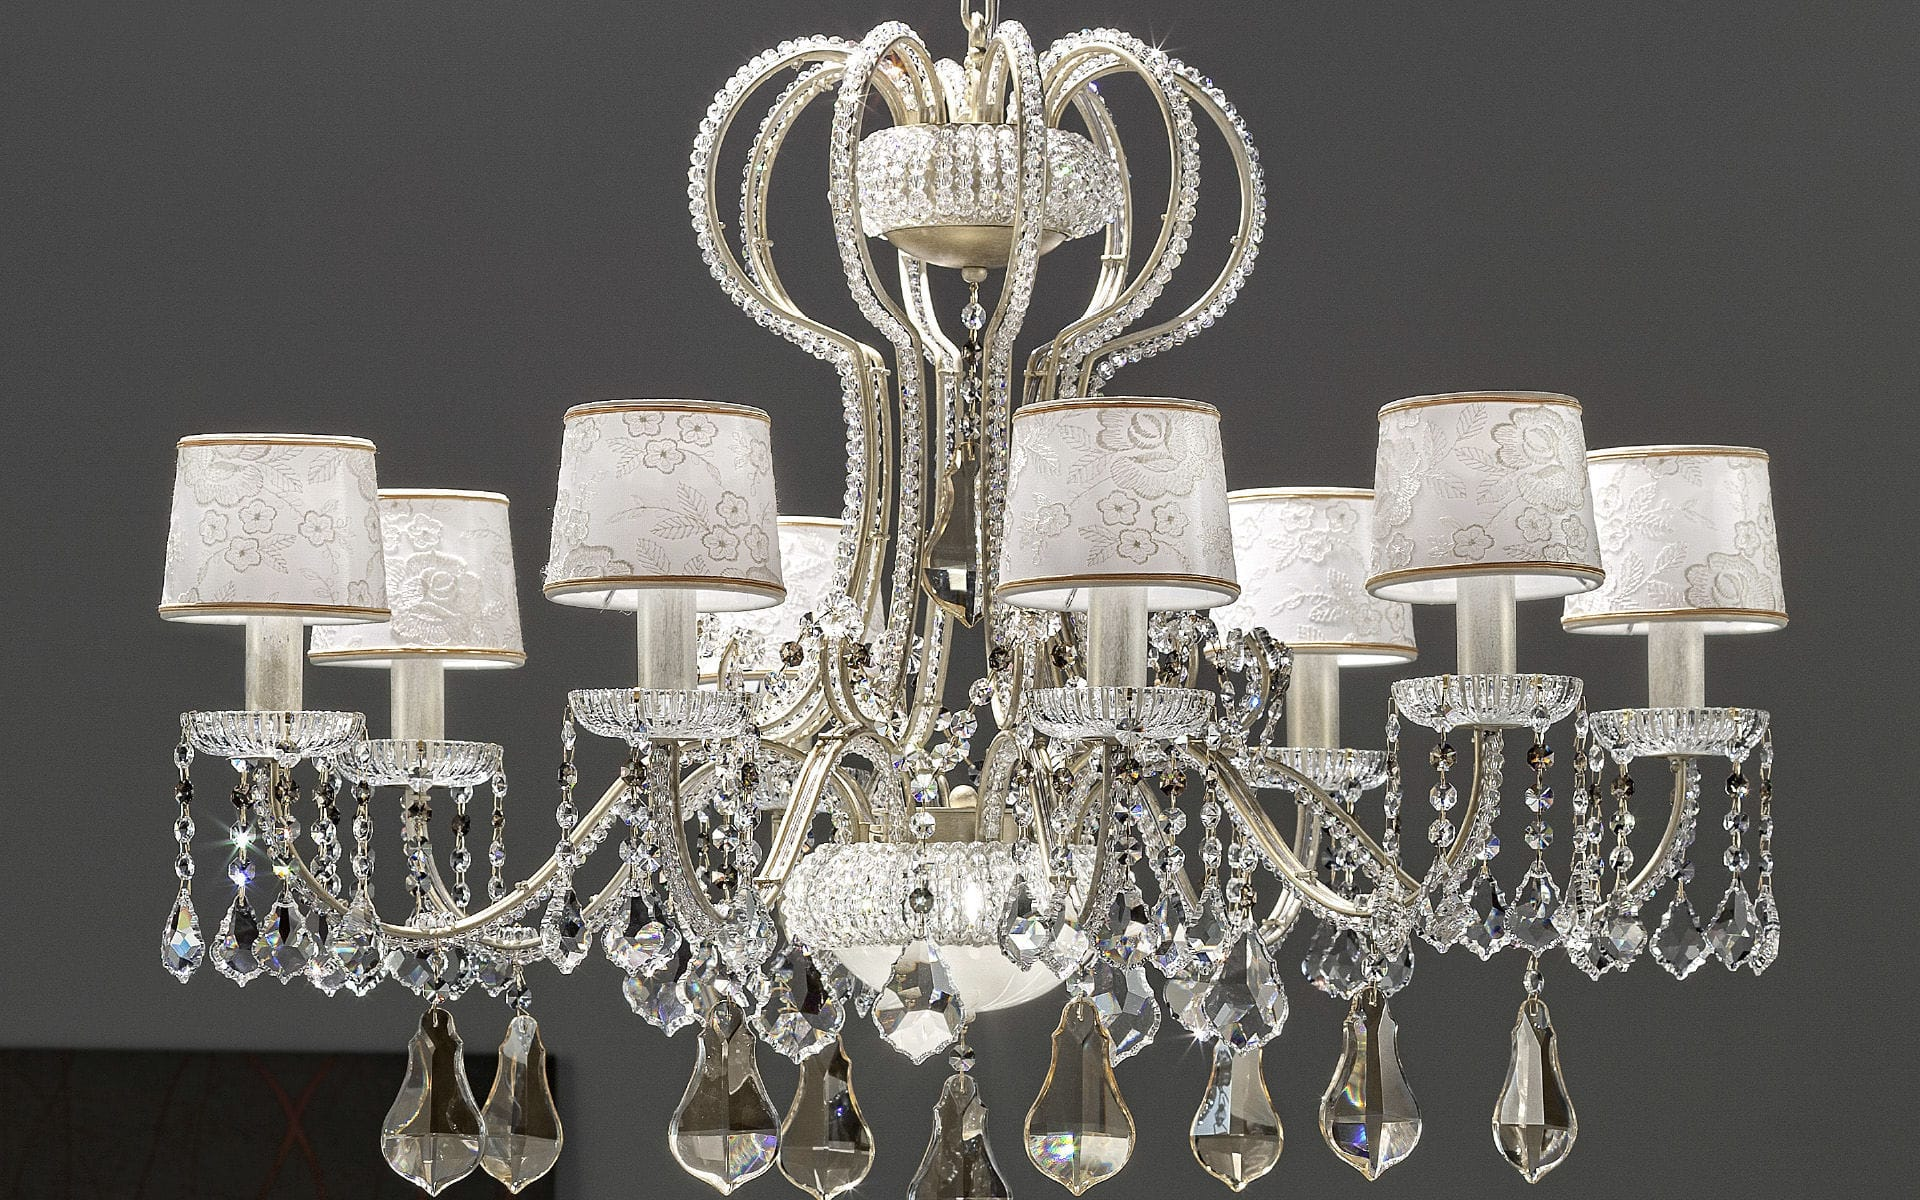 Classic chandelier crystal metal fabric GAL€ Masiero